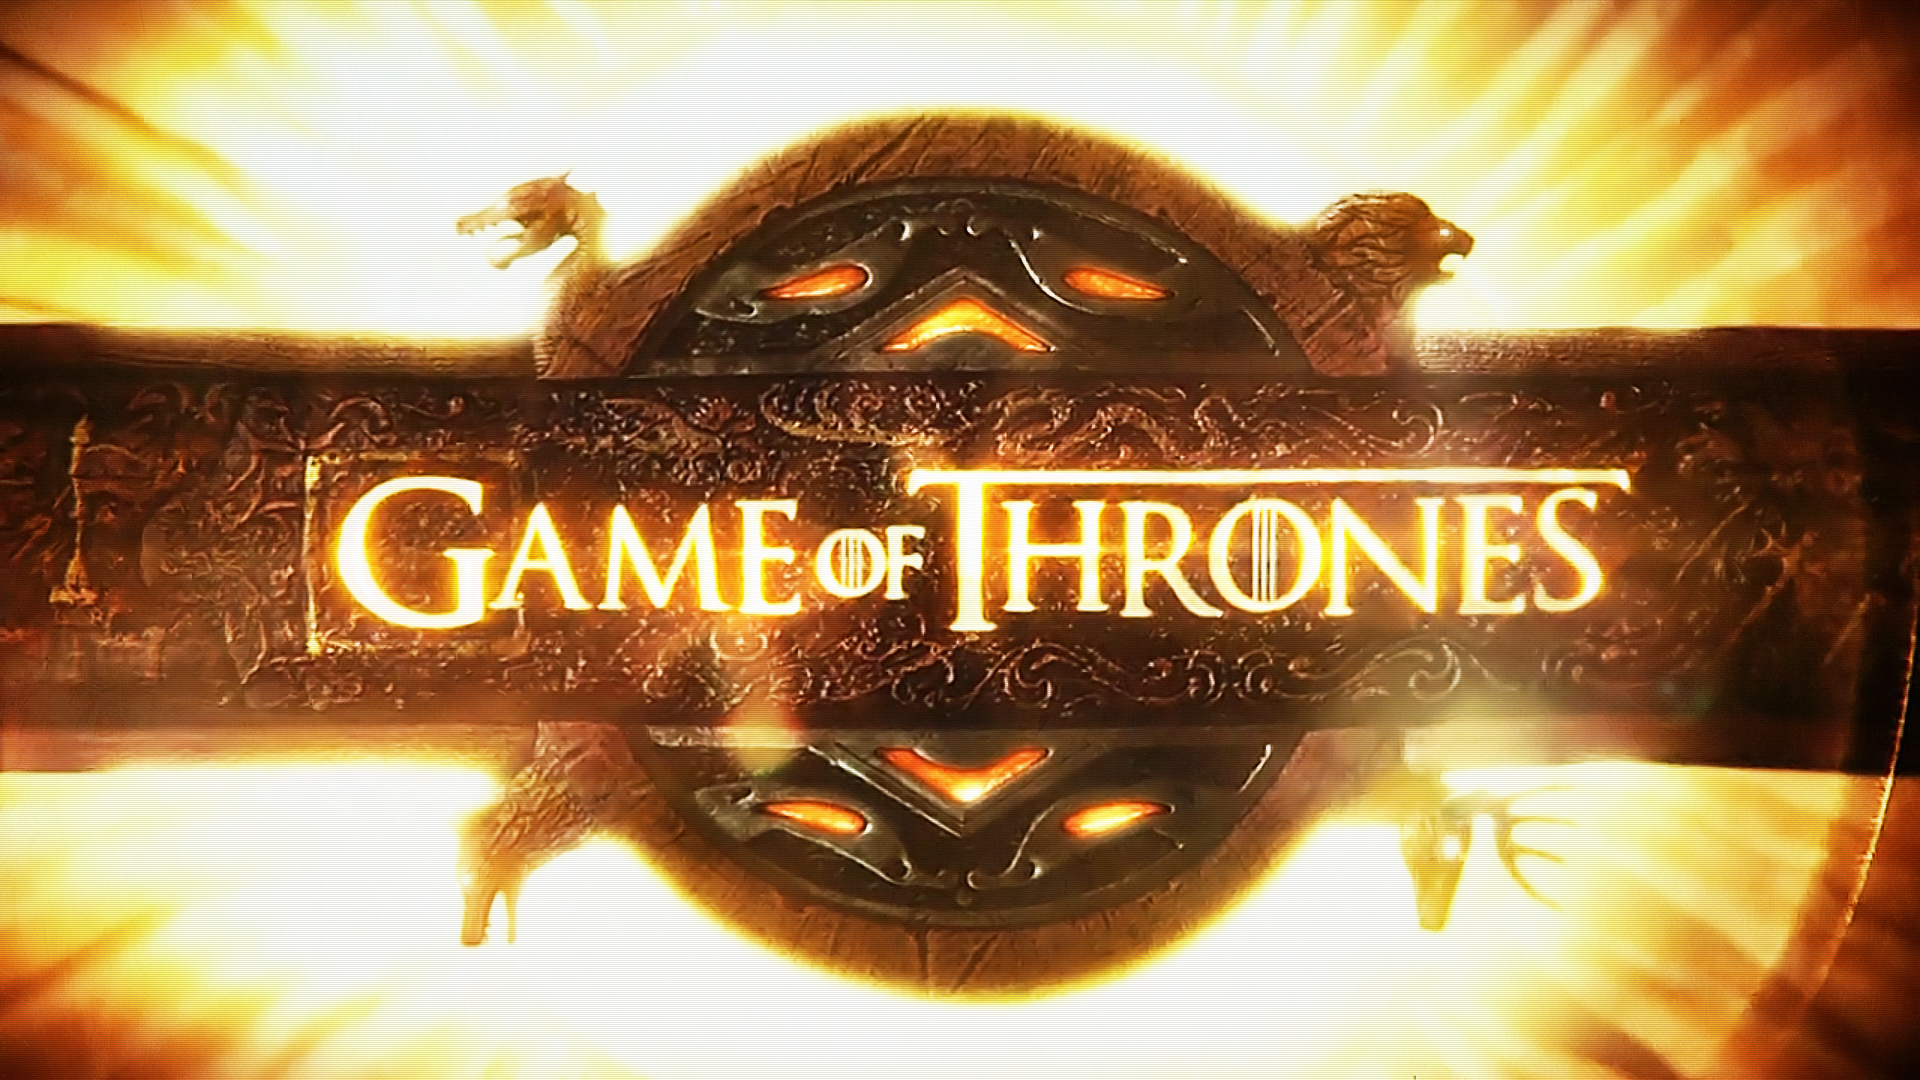 Screensaver of the movie Game of Thrones